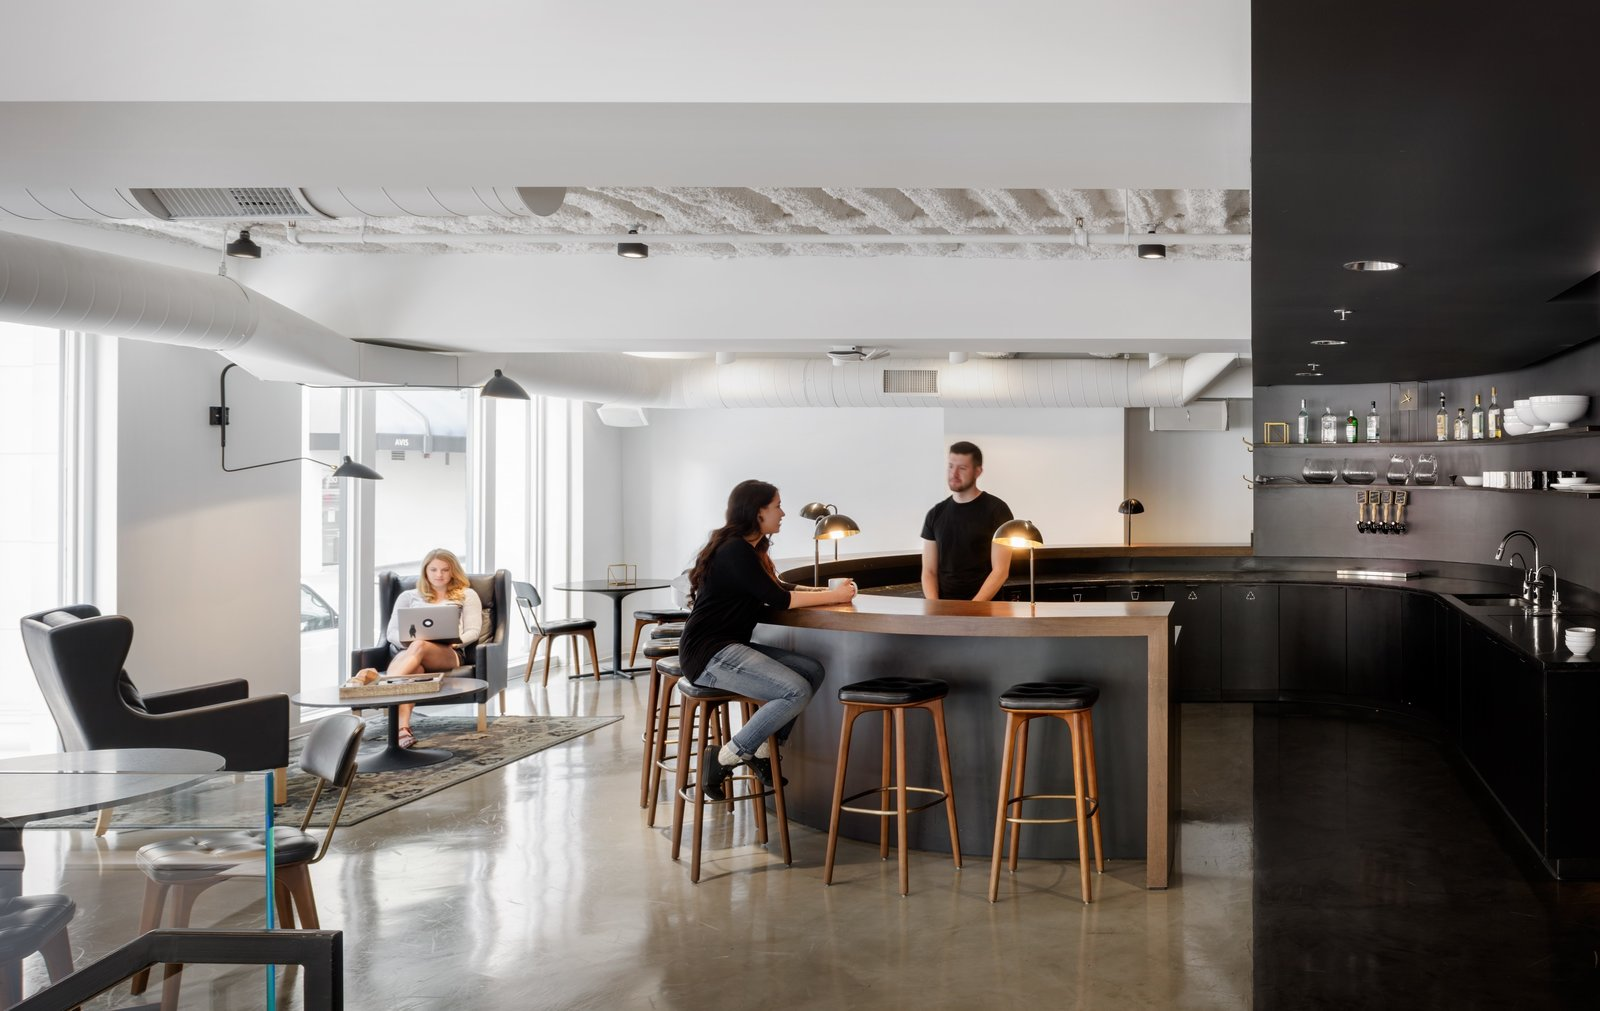 The large circular open bar and the harsh contrasts of black and white makes a dramatic yet engaging place for co-workers to congregate and connect.  Photo 2 of 12 in Step Inside Squarespace's Minimalist Portland Office